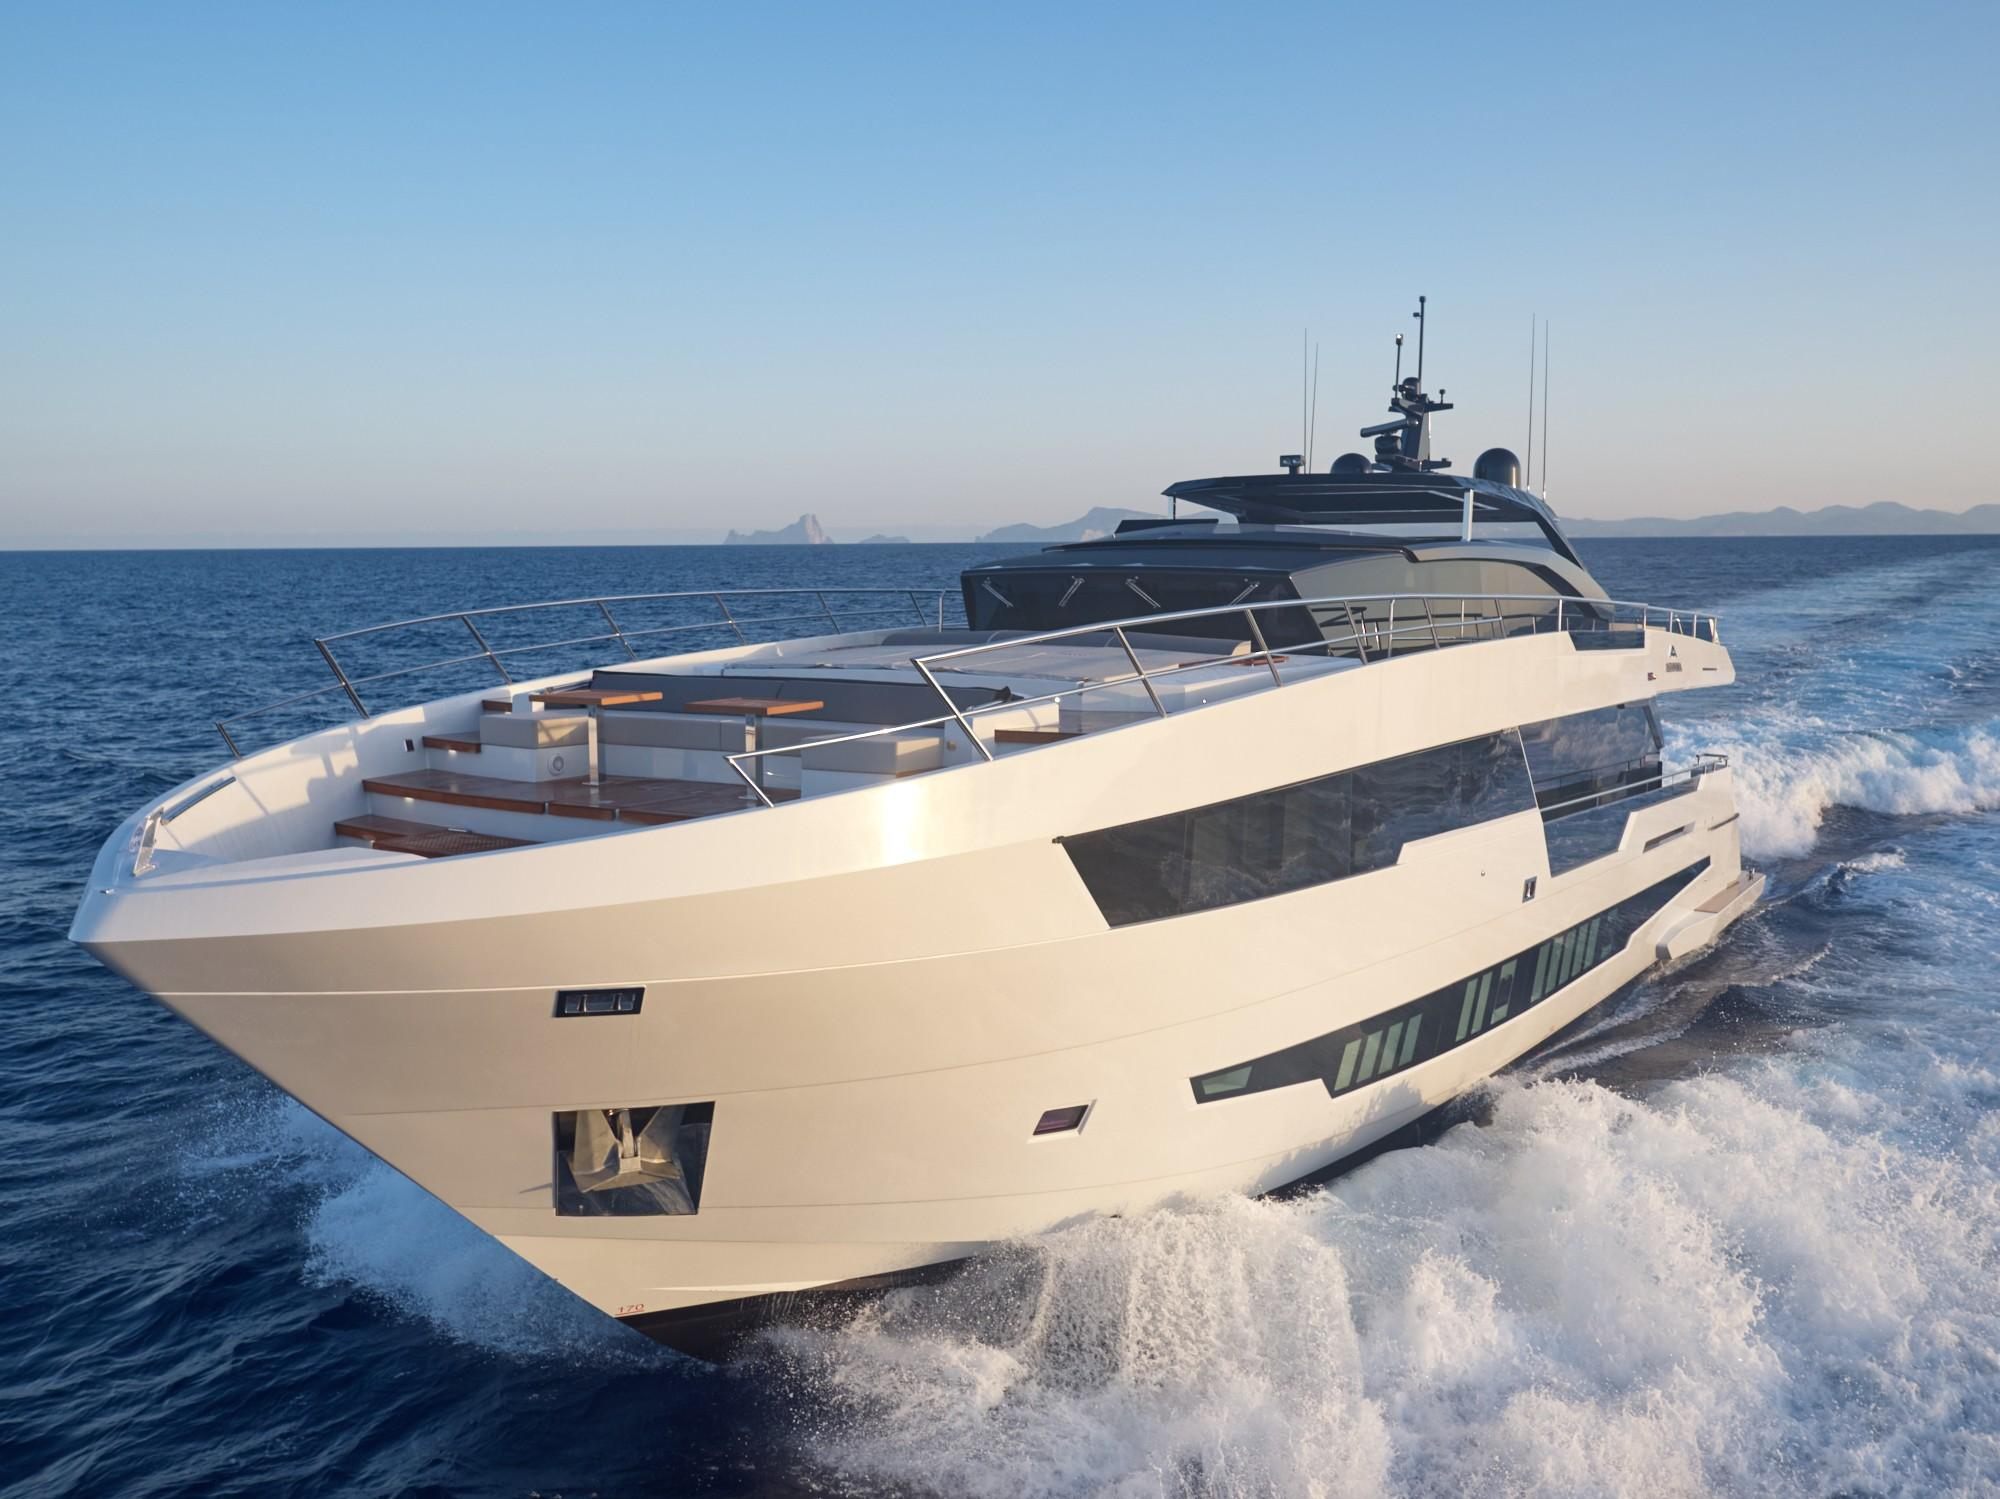 100 Foot Yacht >> 2020 100 Ft Yacht For Sale Allied Marine